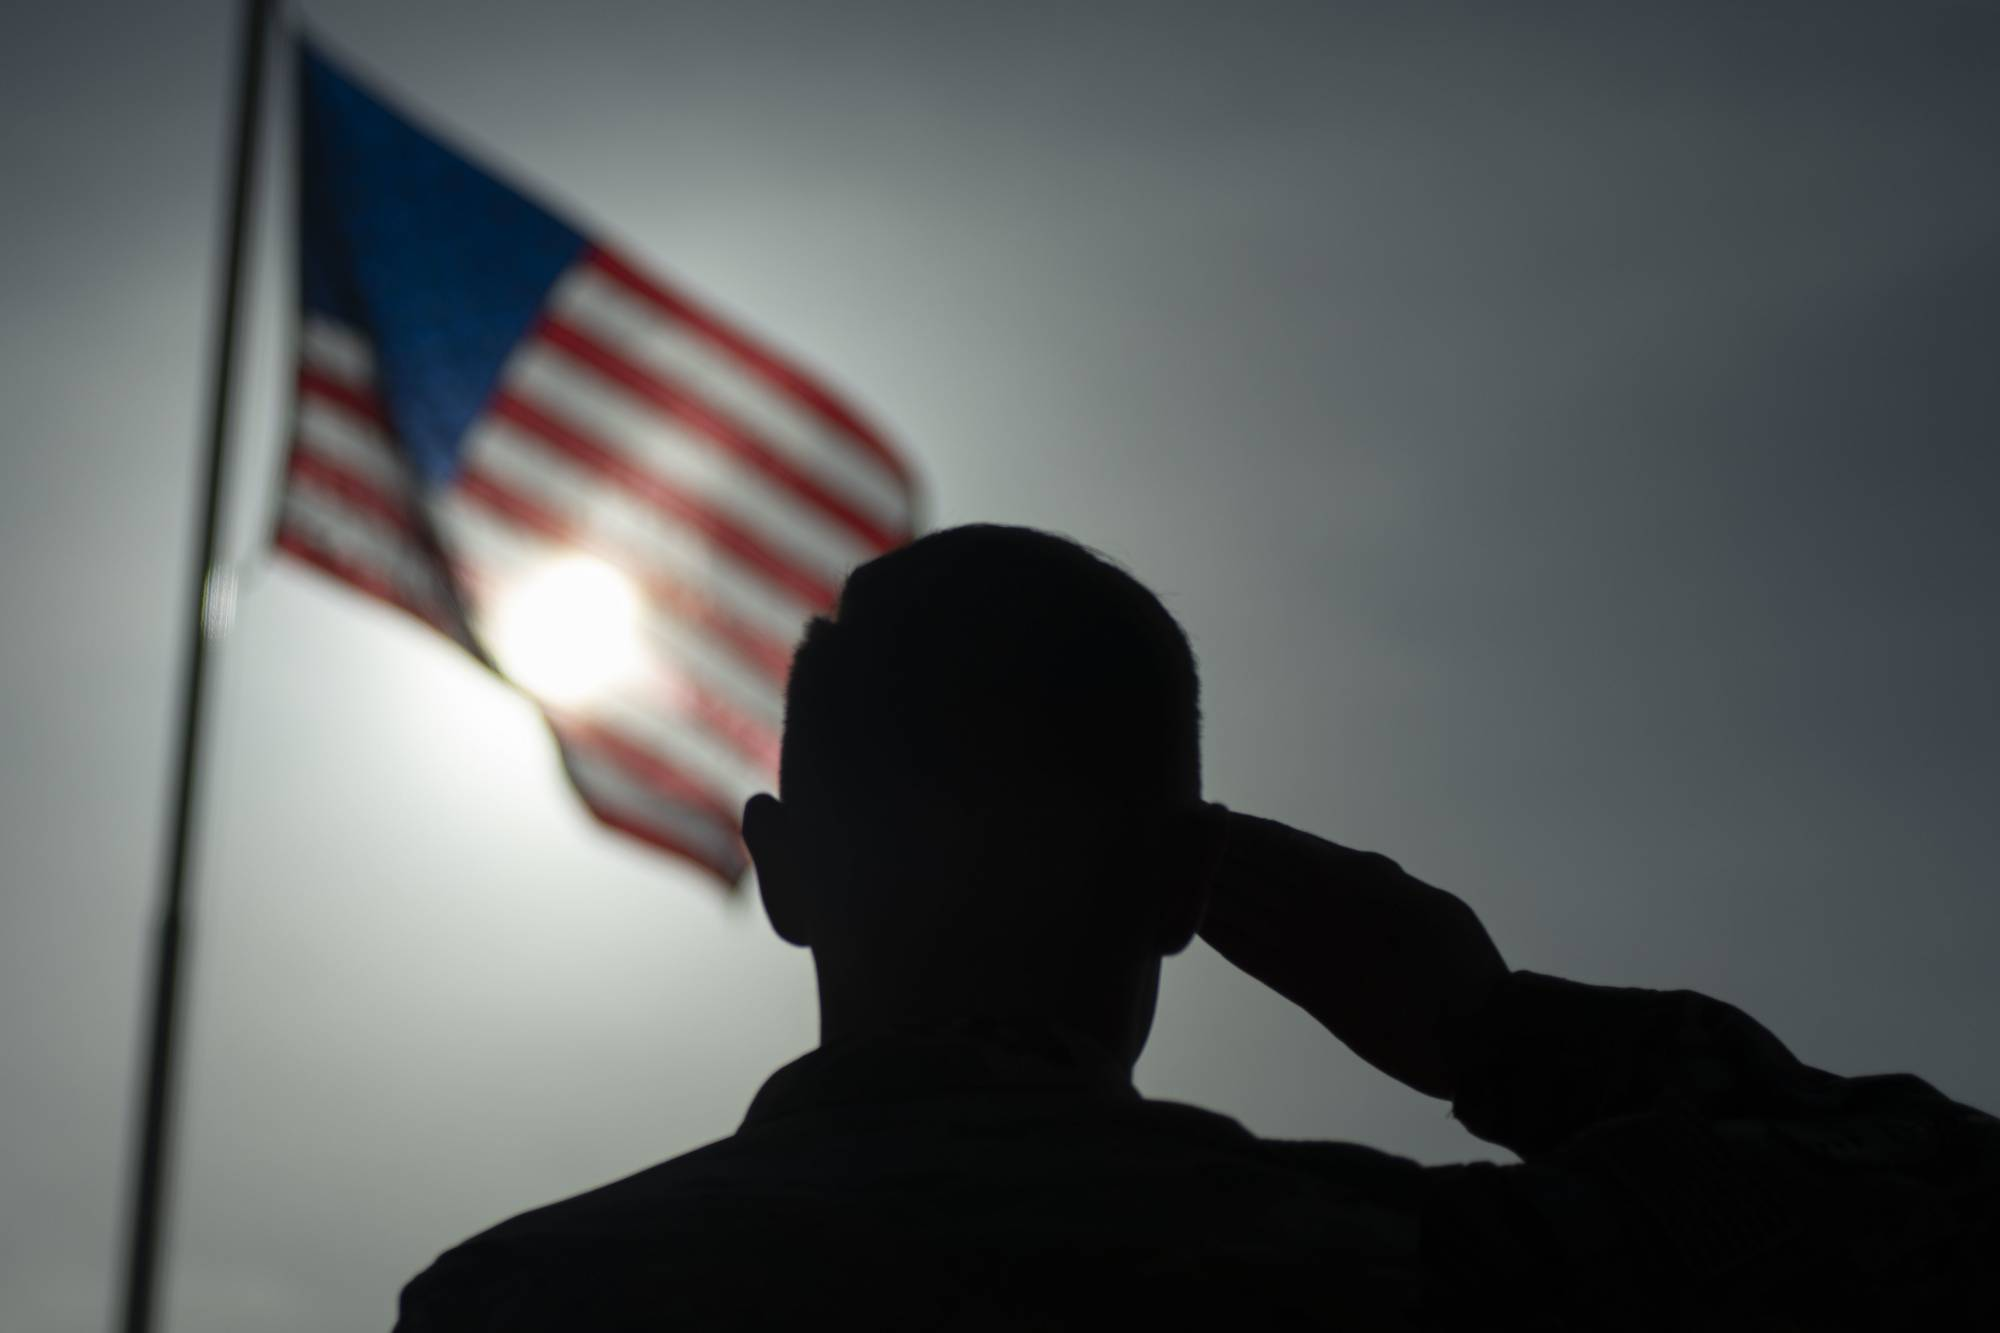 In this photo taken Aug. 26, 2019 and released by the U.S. Air Force, U.S. Air Force Staff Sgt. Devin Boyer, 435th Air Expeditionary Wing photojournalist, salutes the flag during a ceremony signifying the change from tactical to enduring operations at Camp Simba, Manda Bay, Kenya. The al-Shabab extremist group said Sunday, Jan. 5, 2020 that it has attacked the Camp Simba military base used by U.S. and Kenyan troops in coastal Kenya, while Kenya's military says the attempted pre-dawn breach was repulsed and at least four attackers were killed. (Staff Sgt. Lexie West/U.S. Air Force via AP)